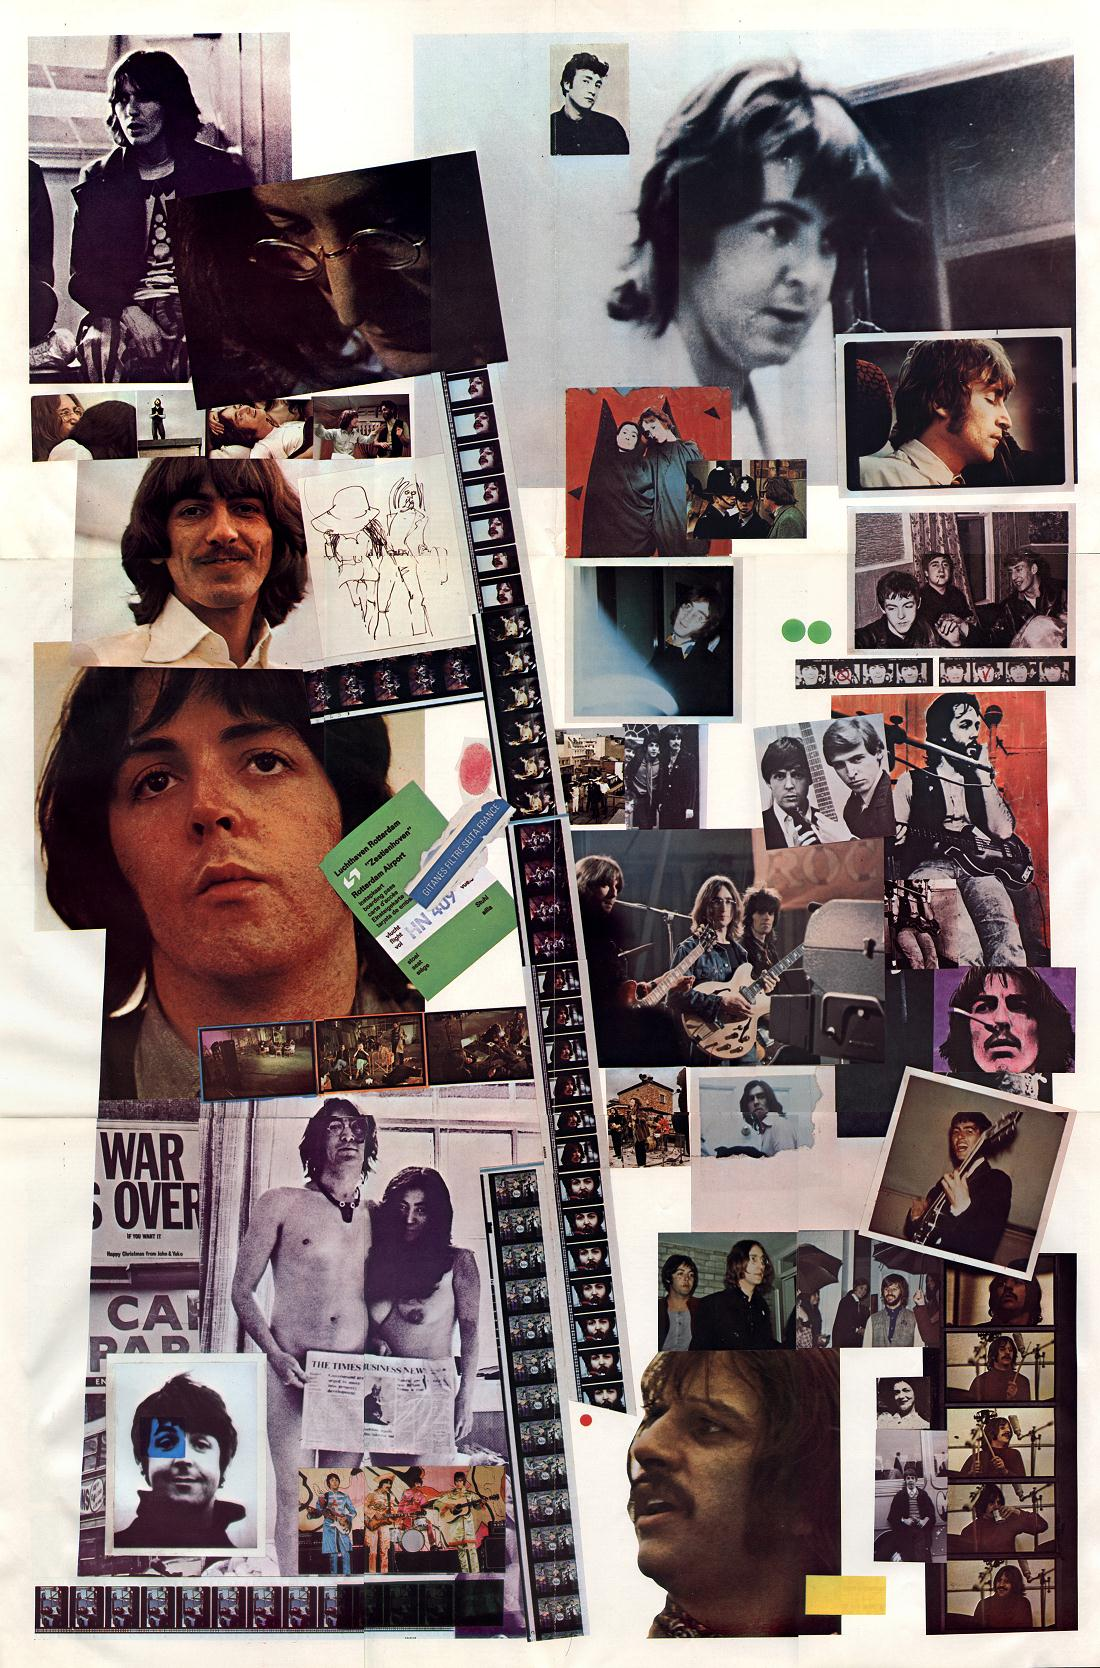 1969-01-XX-BLACK_ALBUM-poster_actual_size